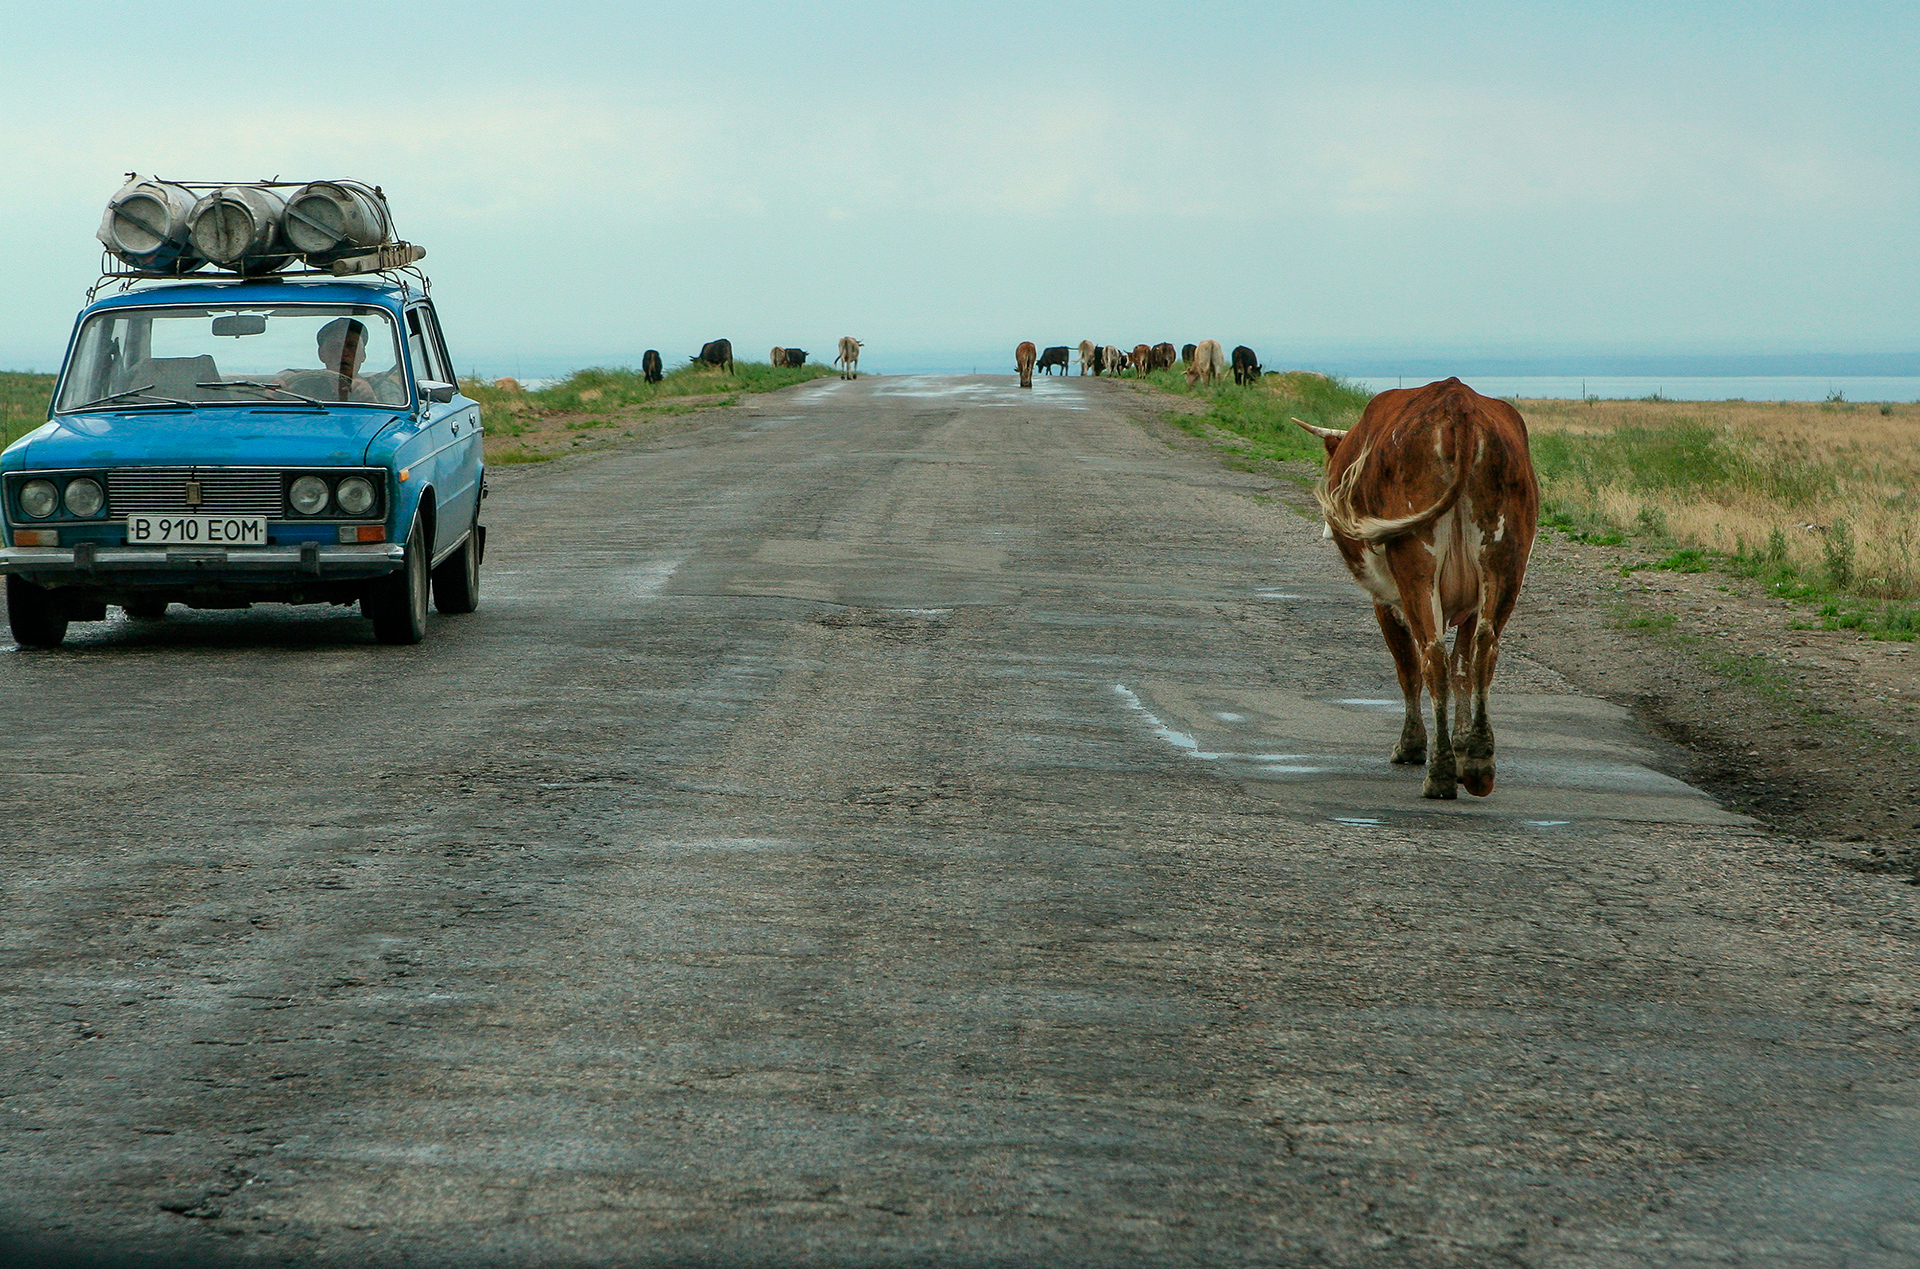 Country road, Almaty, Kazakhstan, soviet car, cow